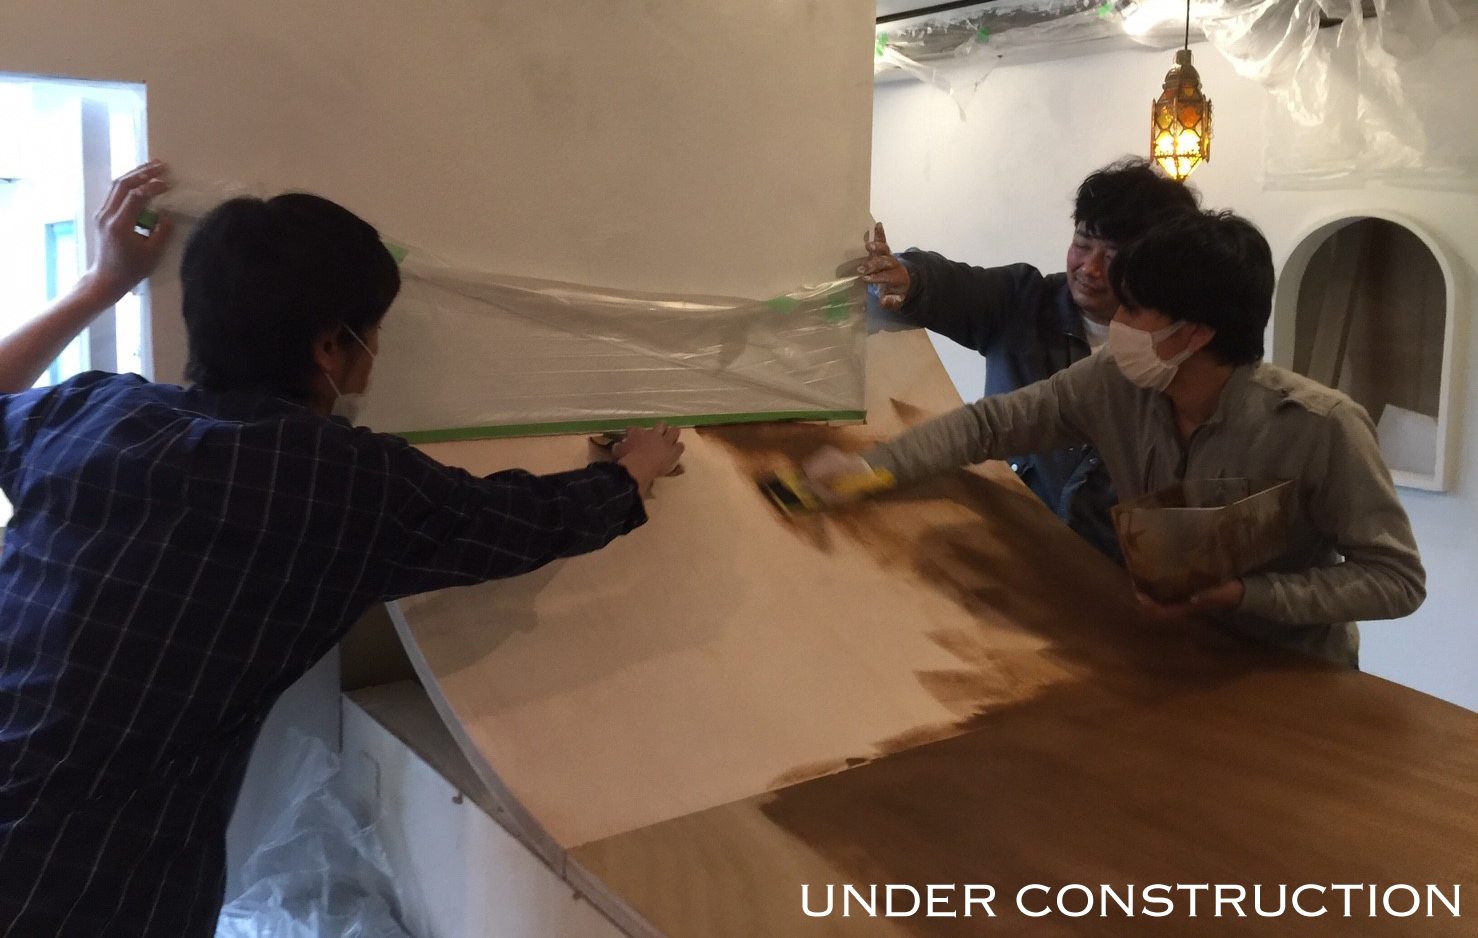 paint underconstruction DIY